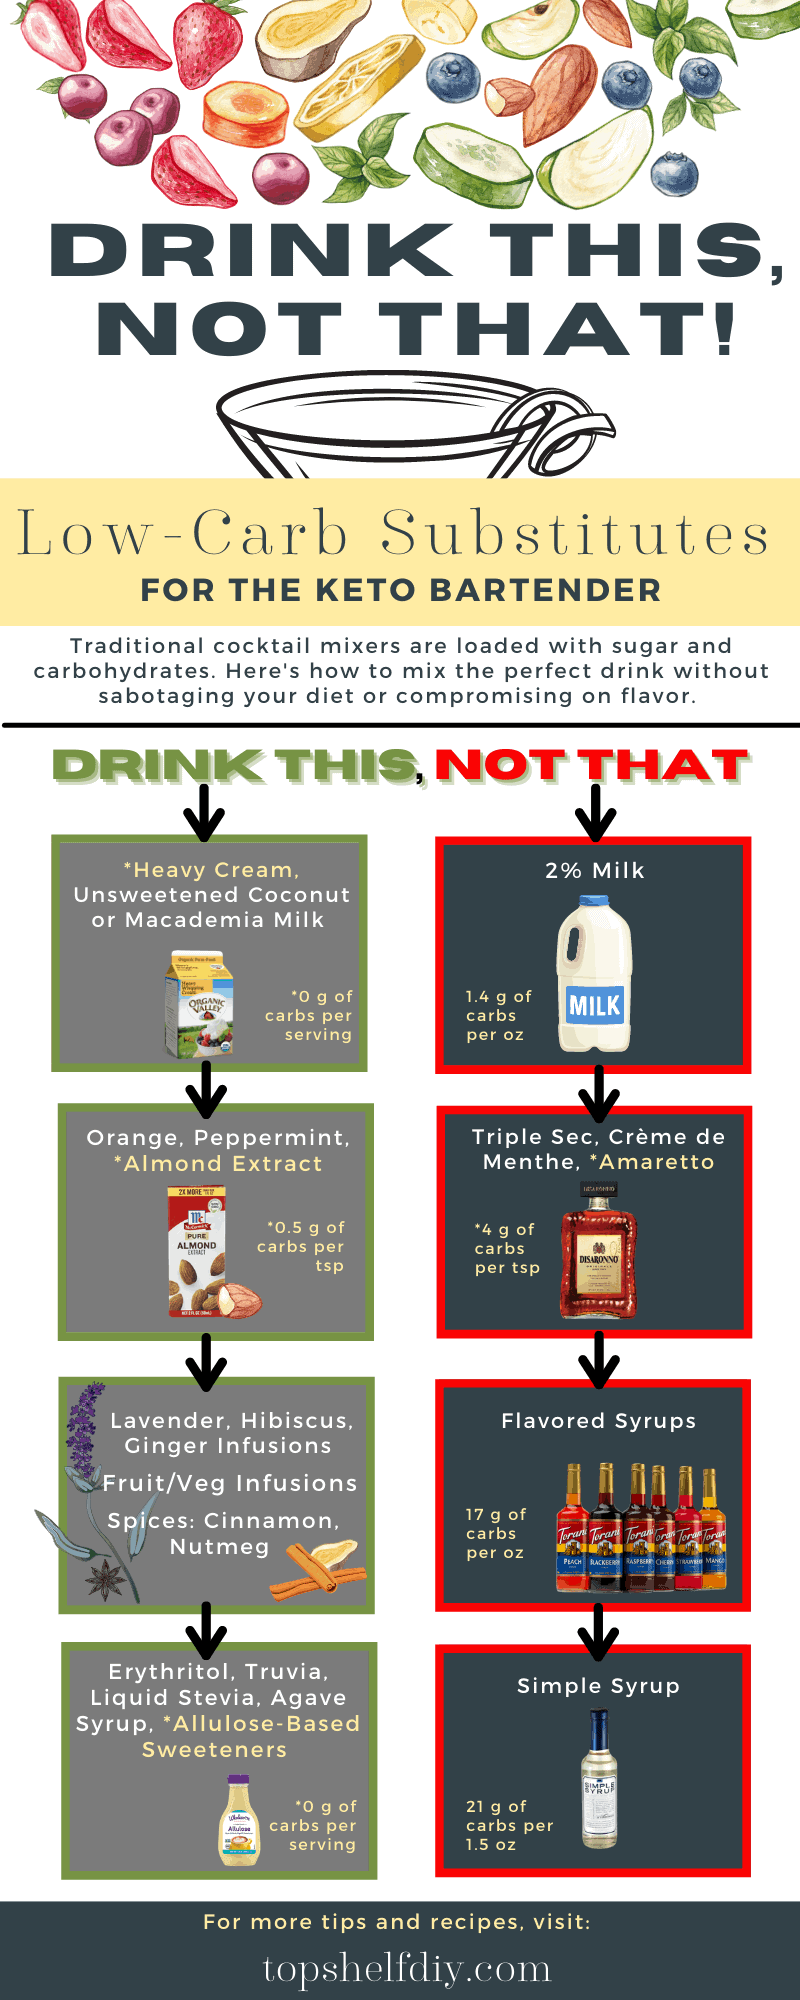 Sticking to low-carb mixers means your body can resume ketosis once it's done metabolizing alcohol. Keto infographic. Drink this, not that. Common substitutions for cocktail mixers.